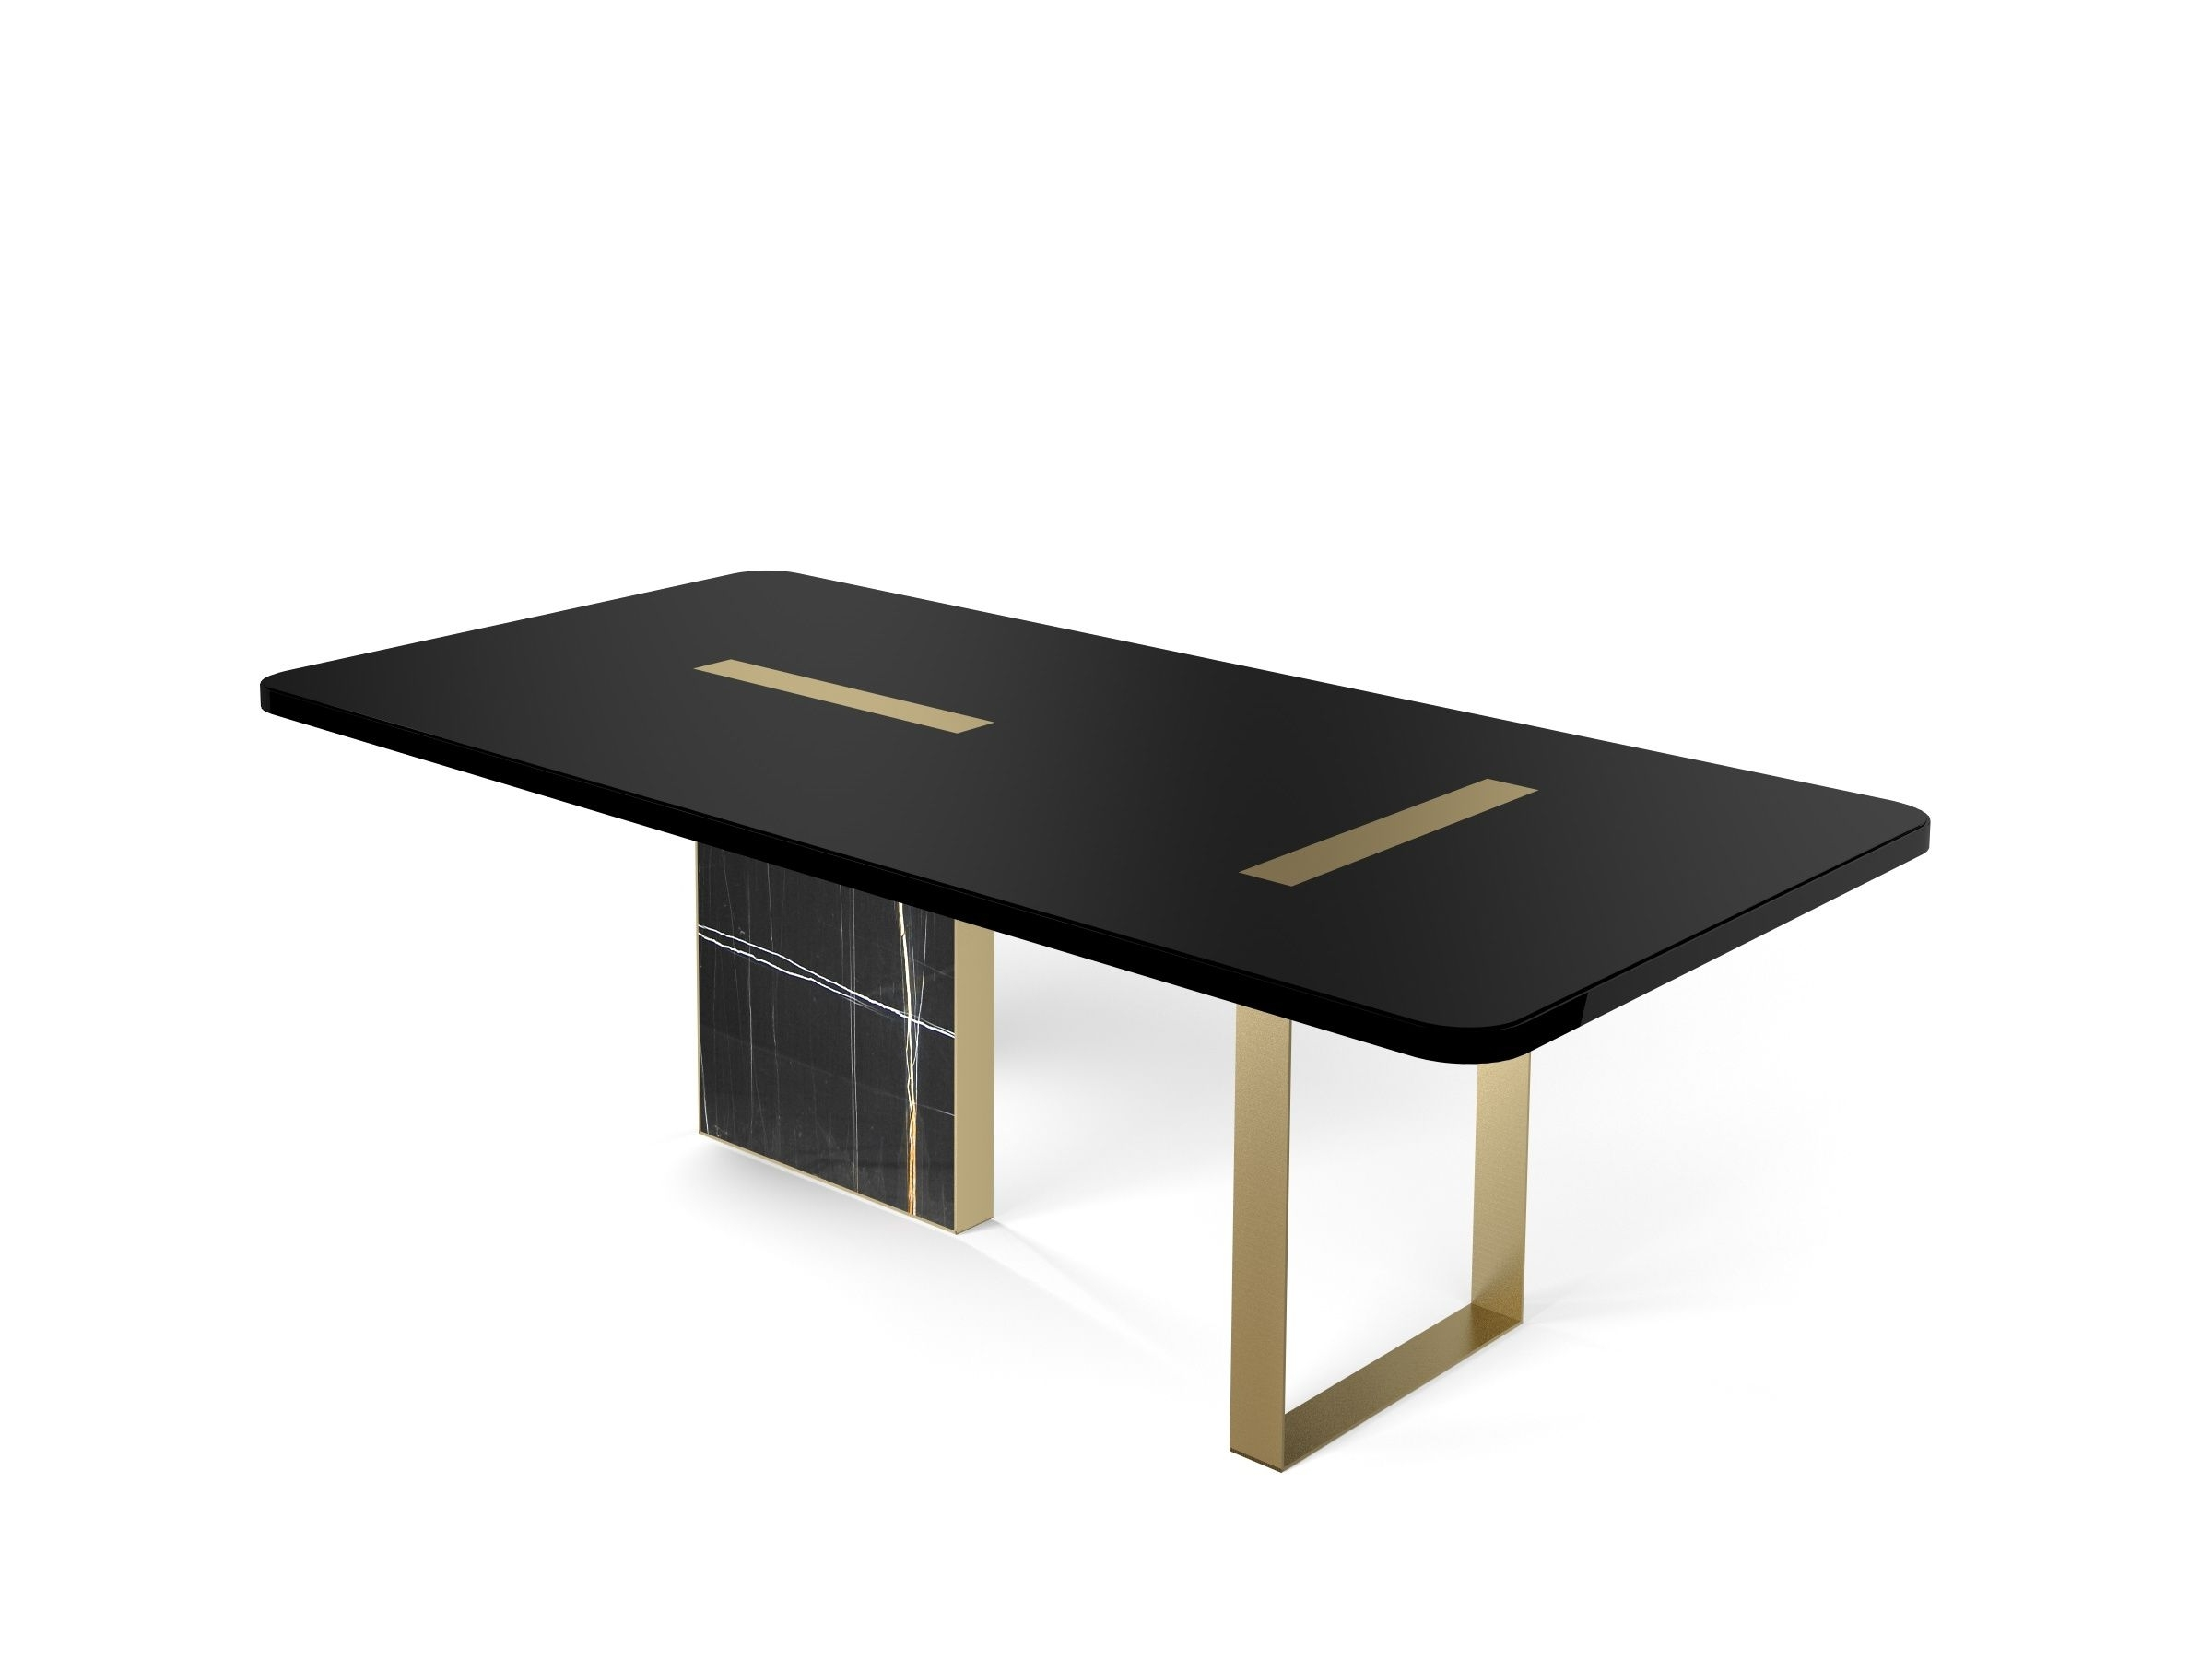 Best And Newest Tyron Dining Table 220X110 In Black Laquered Wood With Brushed Brass Regarding Laurent Rectangle Dining Tables (View 12 of 25)